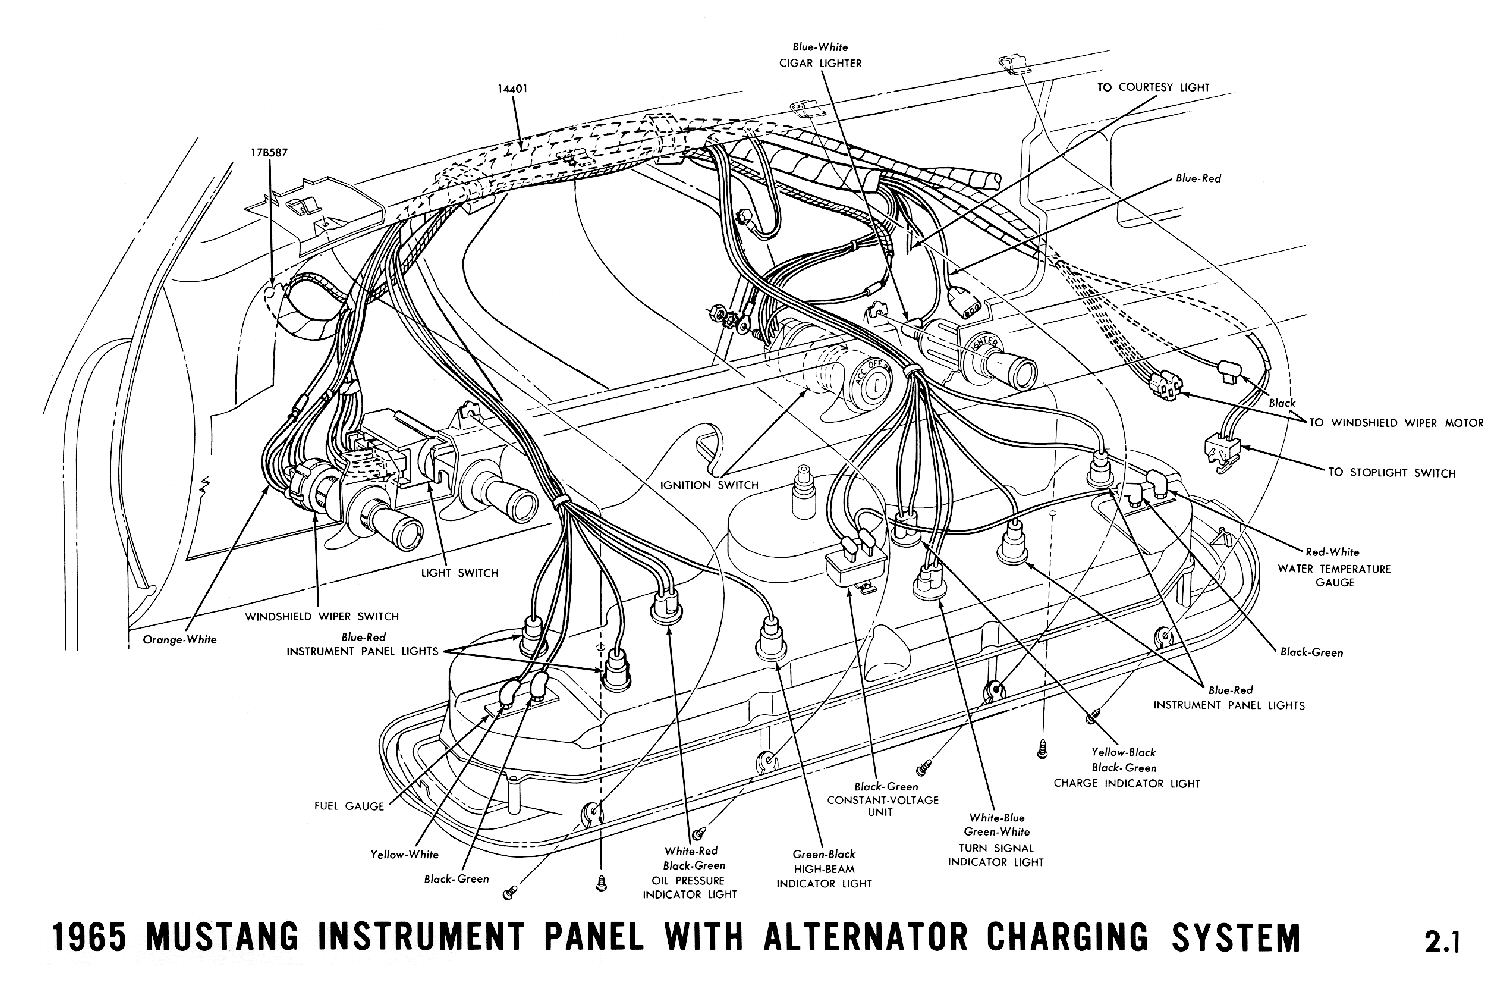 65 Mustang Wiring Harness Diagram - Data Wiring Diagram Update on 1989 f350 diesel fuel diagram, 89 f250 steering, 89 f250 parts, 1989 f150 fuel system diagram, 89 f250 engine, 89 f250 headlights, 89 f250 exhaust, 89 f250 frame, 89 f250 forum, 1989 f 150 electrical diagram,